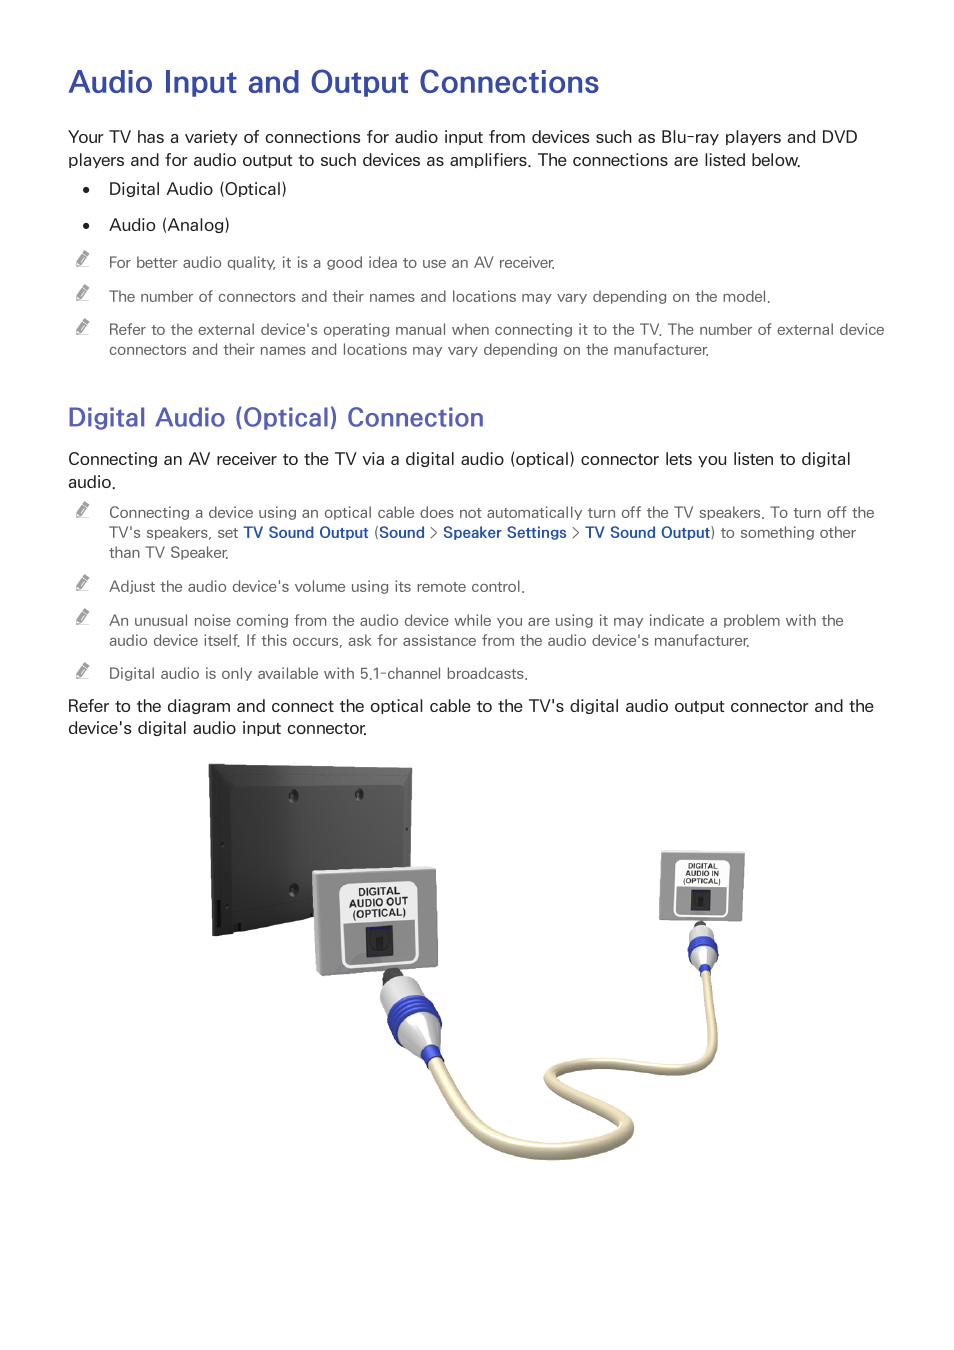 Audio input and output connections, Digital audio (optical